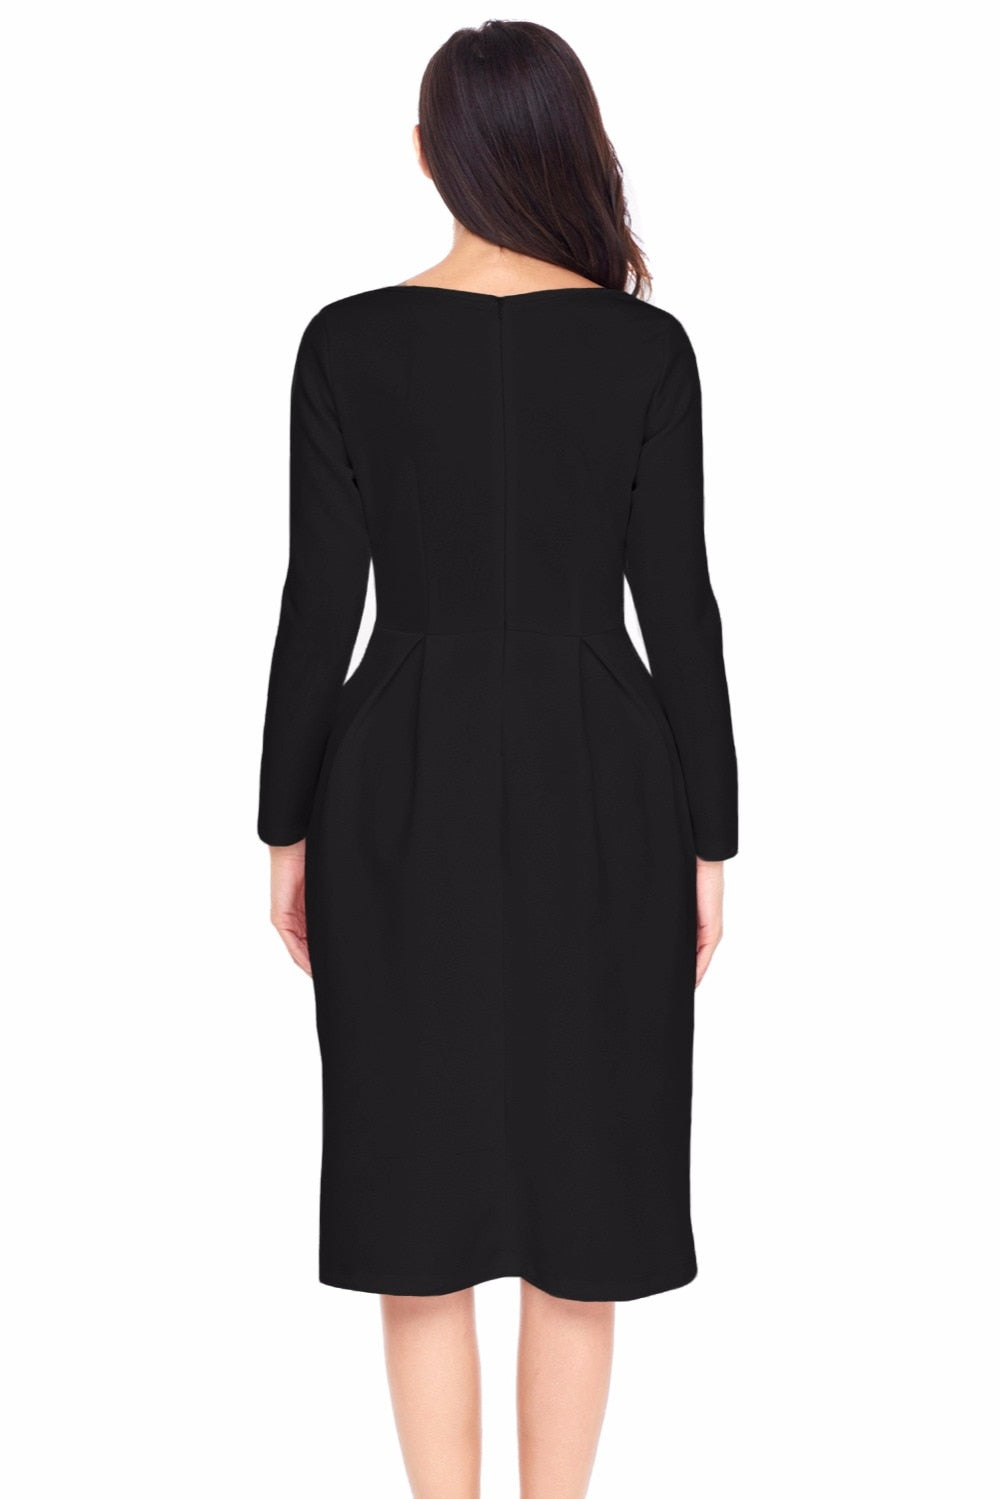 Womens Work Office Party A Line Robe Hiver Black Bateau Collar